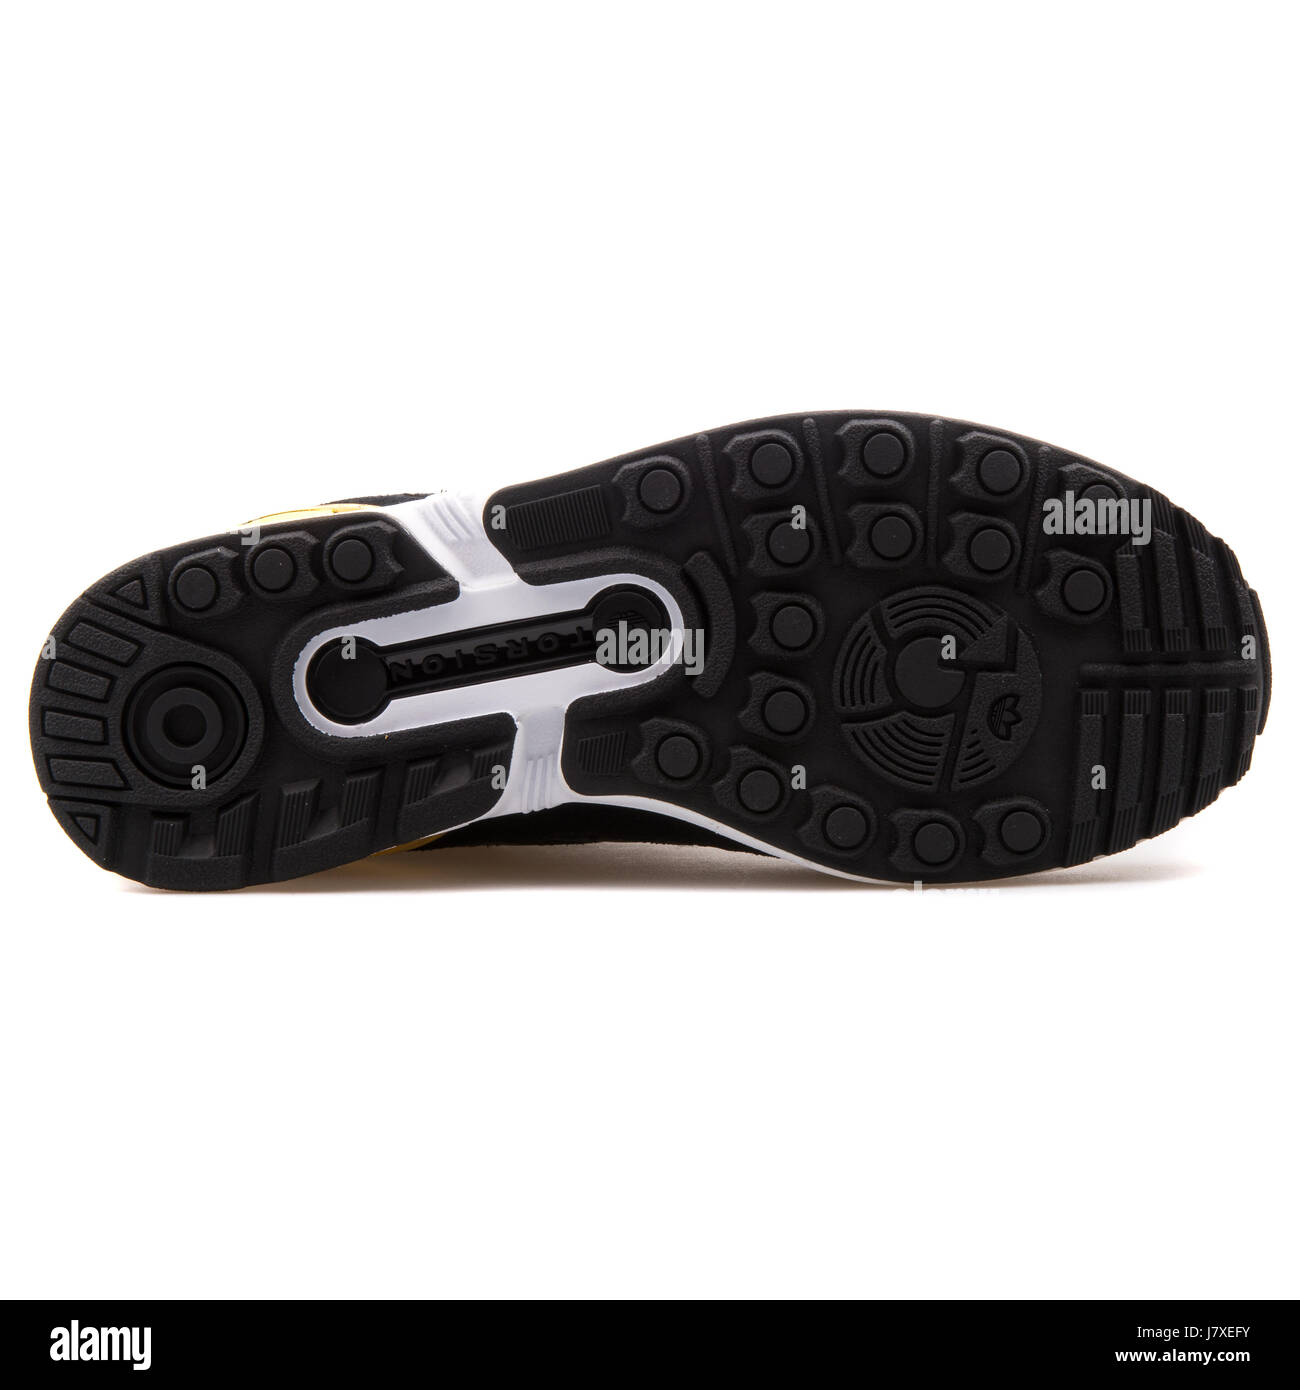 adidas zx flux gold and black womens